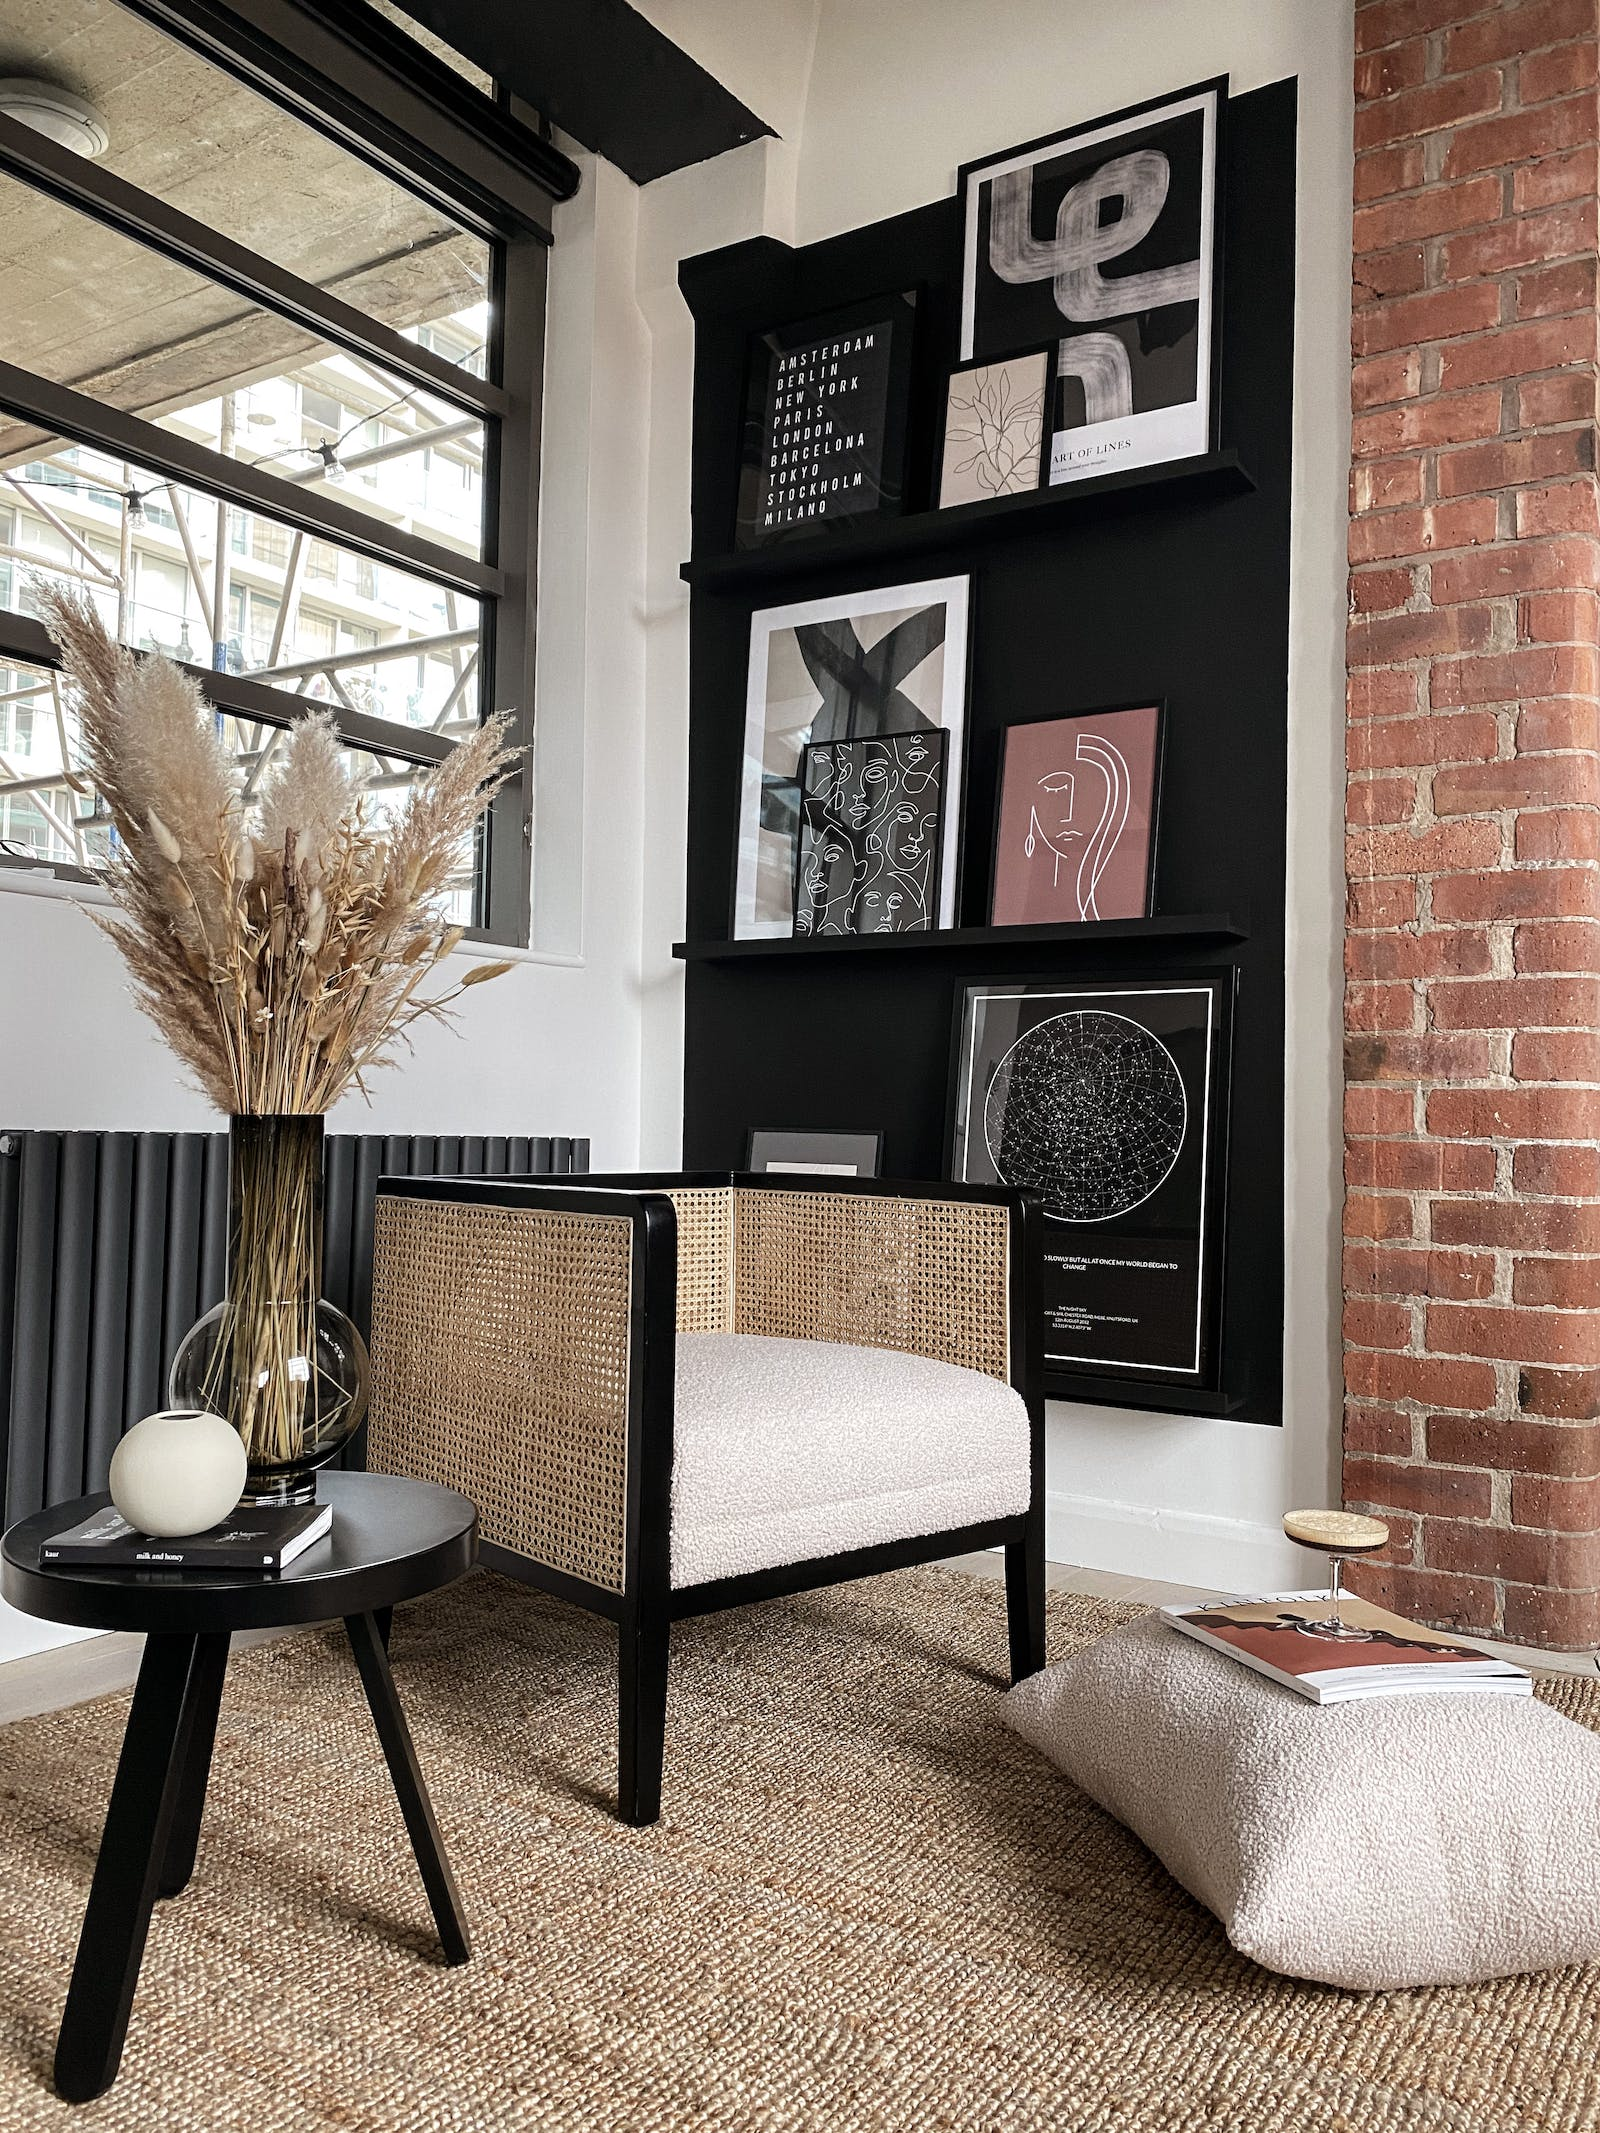 Lounge area corner with a gallery wall and exposed brick wall